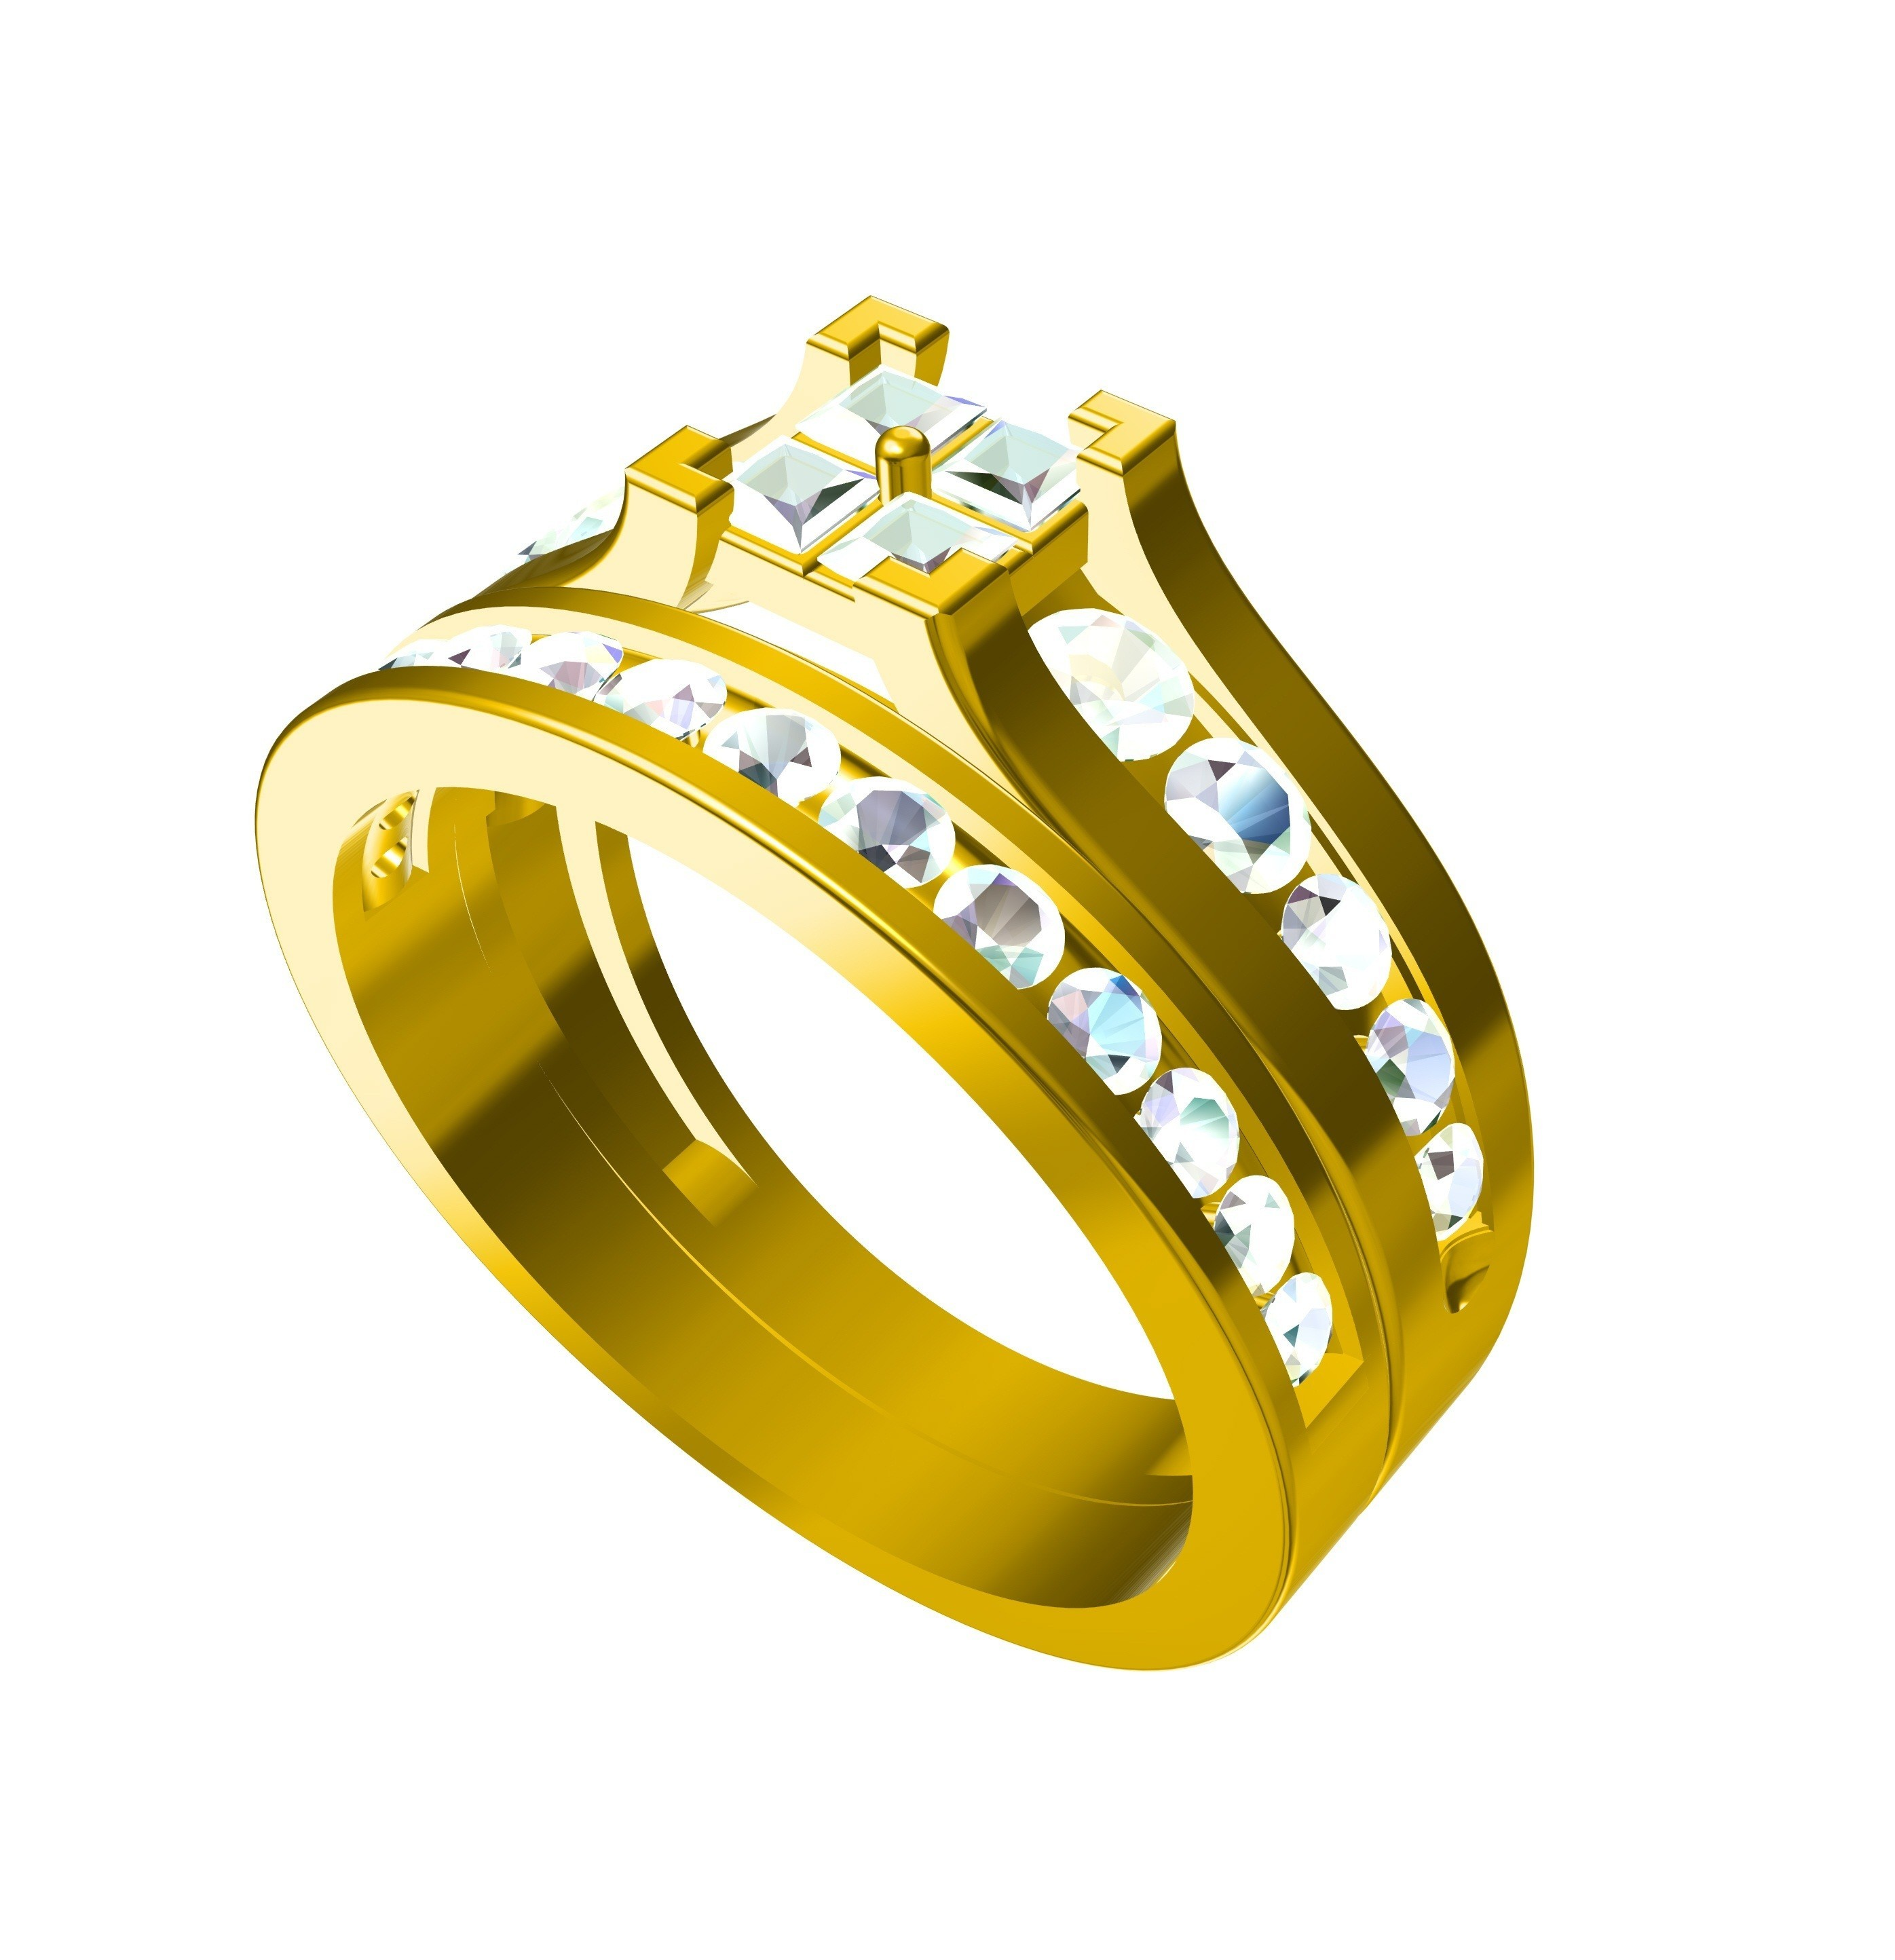 RG27114.jpg Download free STL file Jewelry 3D CAD Model In STL Fromat • Design to 3D print, VR3D